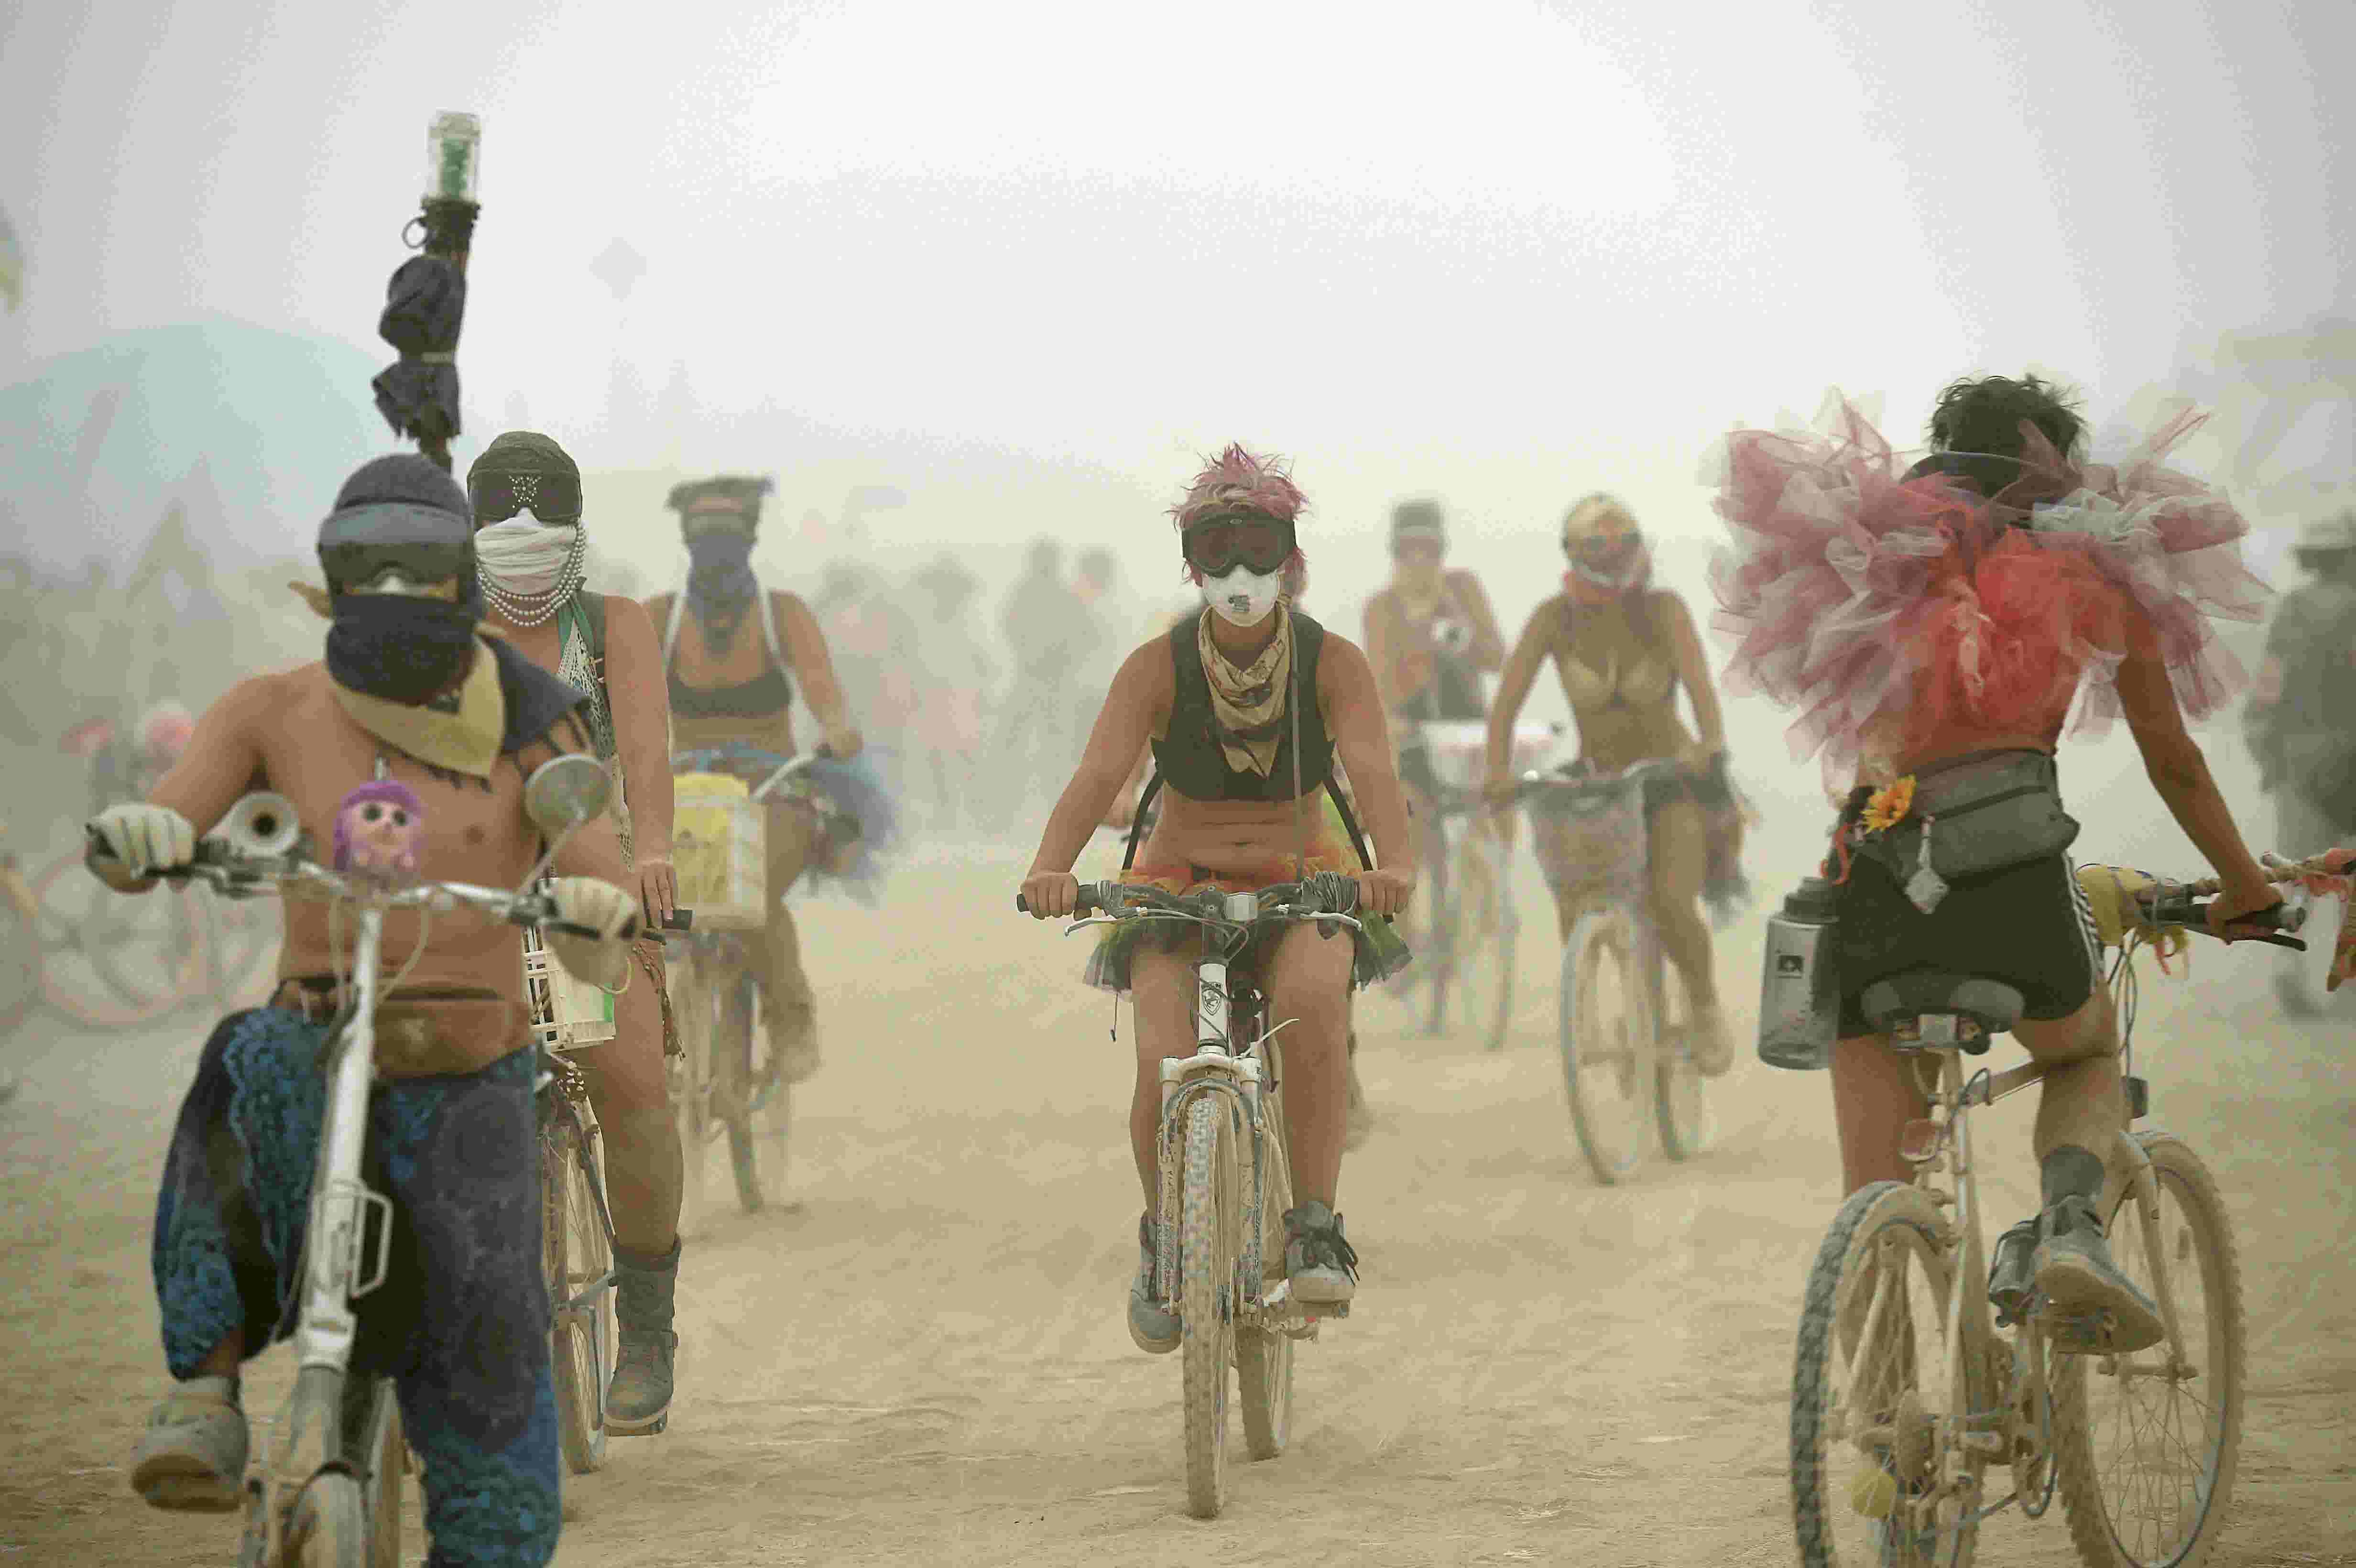 Burning Man survival guide: Everything you need, from directions to shopping lists